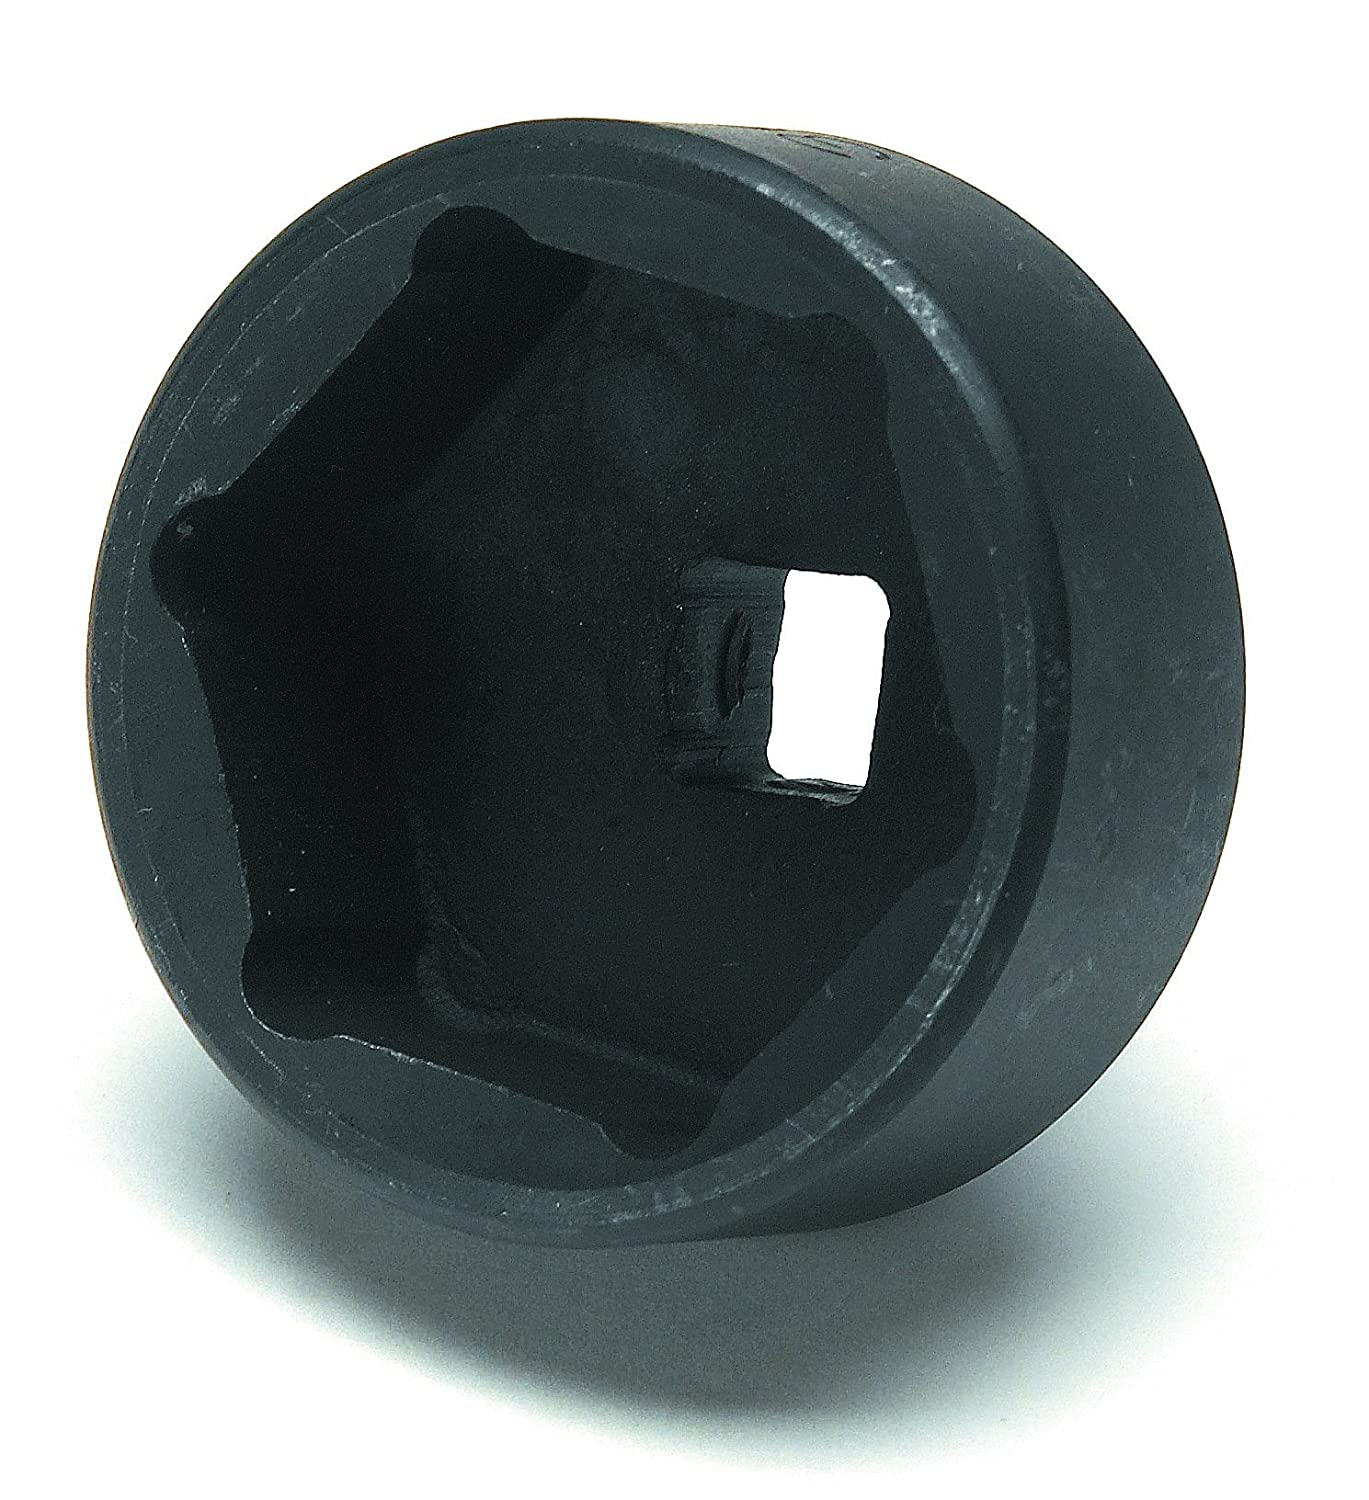 CTA Tools 2573 Low-Profile Metric Cap Socket, 24mm